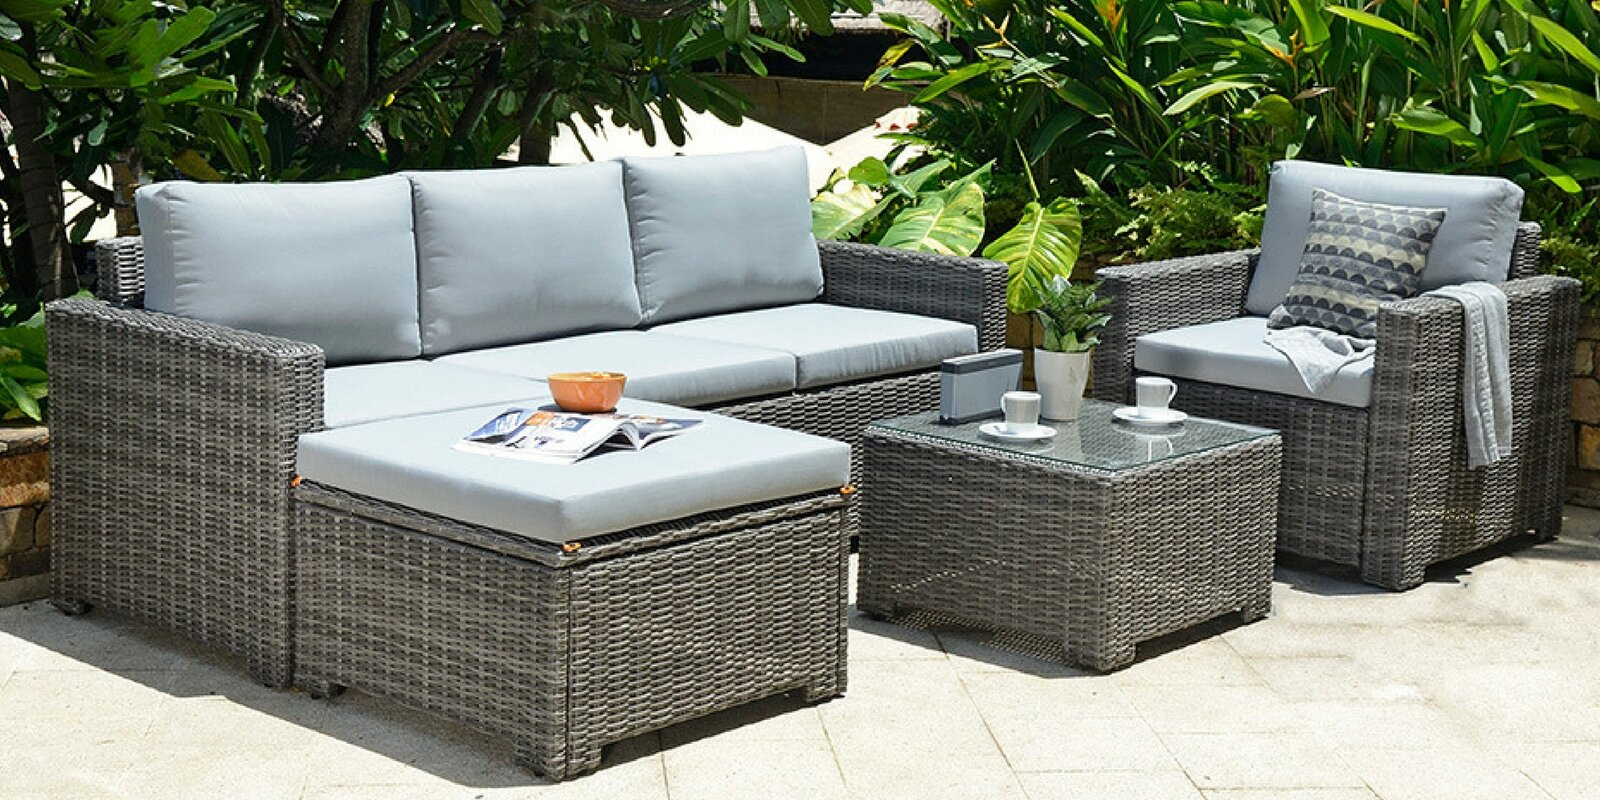 garten living 5 sitzer ecksofa set delacruz aus rattan mit. Black Bedroom Furniture Sets. Home Design Ideas